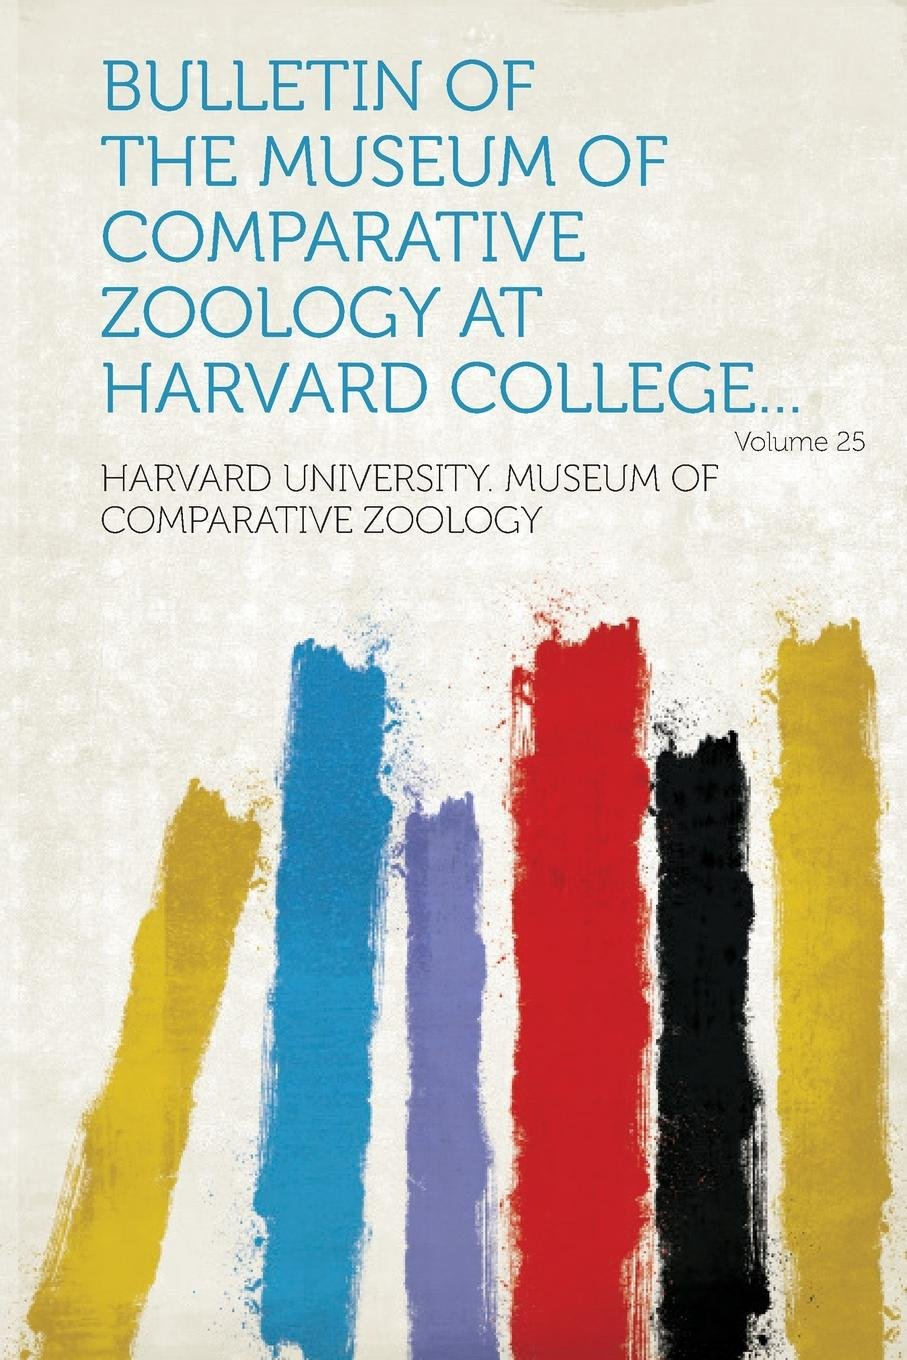 Bulletin of the Museum of Comparative Zoology at Harvard College... Volume 25 pdf epub